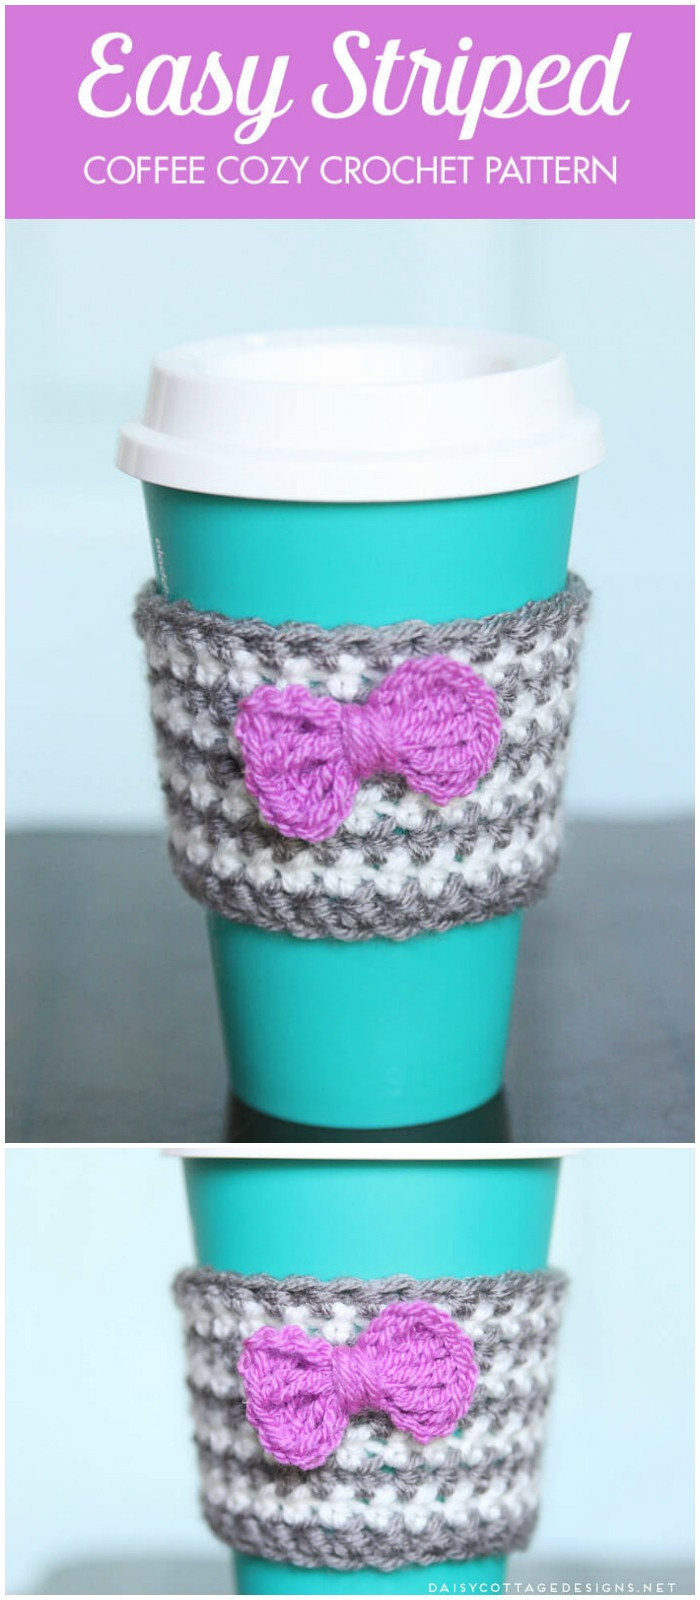 Crochet Coffee Cup Cozy Fresh 8 Crochet Cozy Patterns Free Crochet Patterns • Diy Home Of Crochet Coffee Cup Cozy Awesome Crochet Coffee Cozy Amy Latta Creations